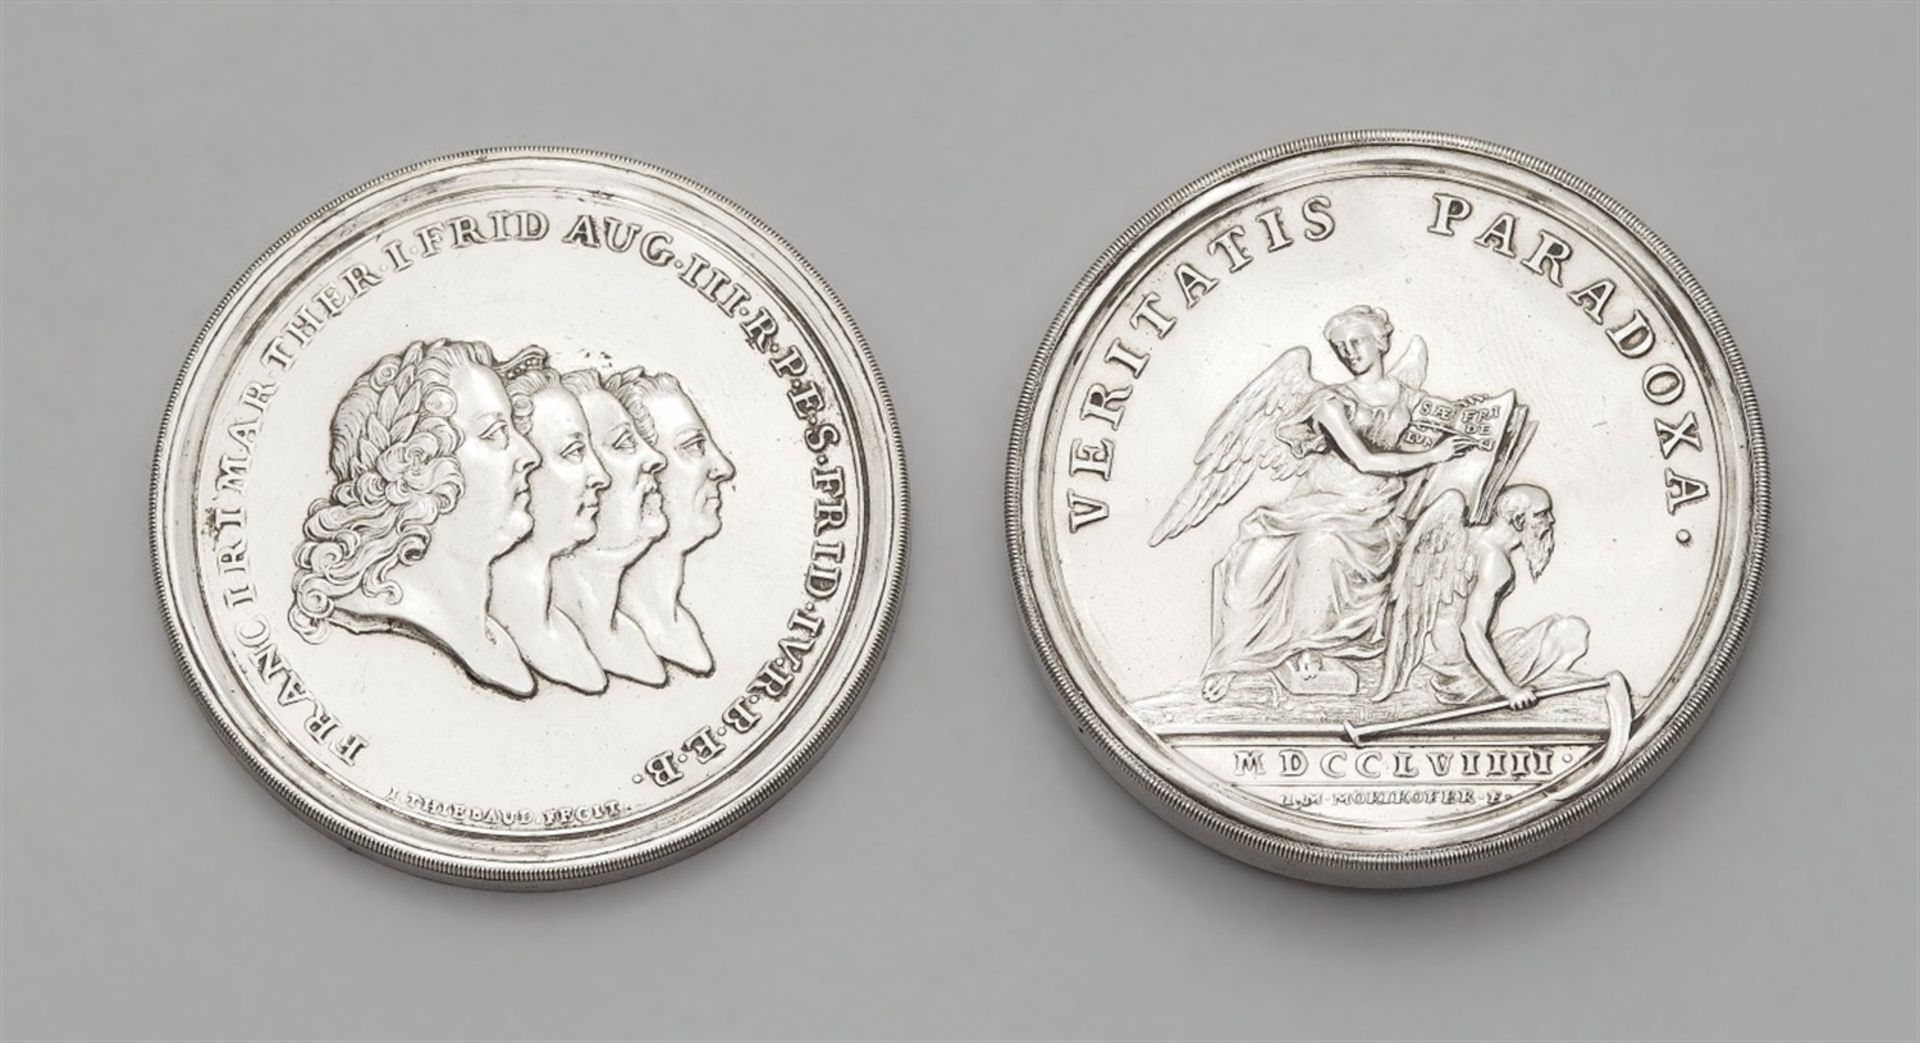 Los 735 - A silver medallion commemorating the Peace of HubertusburgSilver. Hollow medallion with portraits of